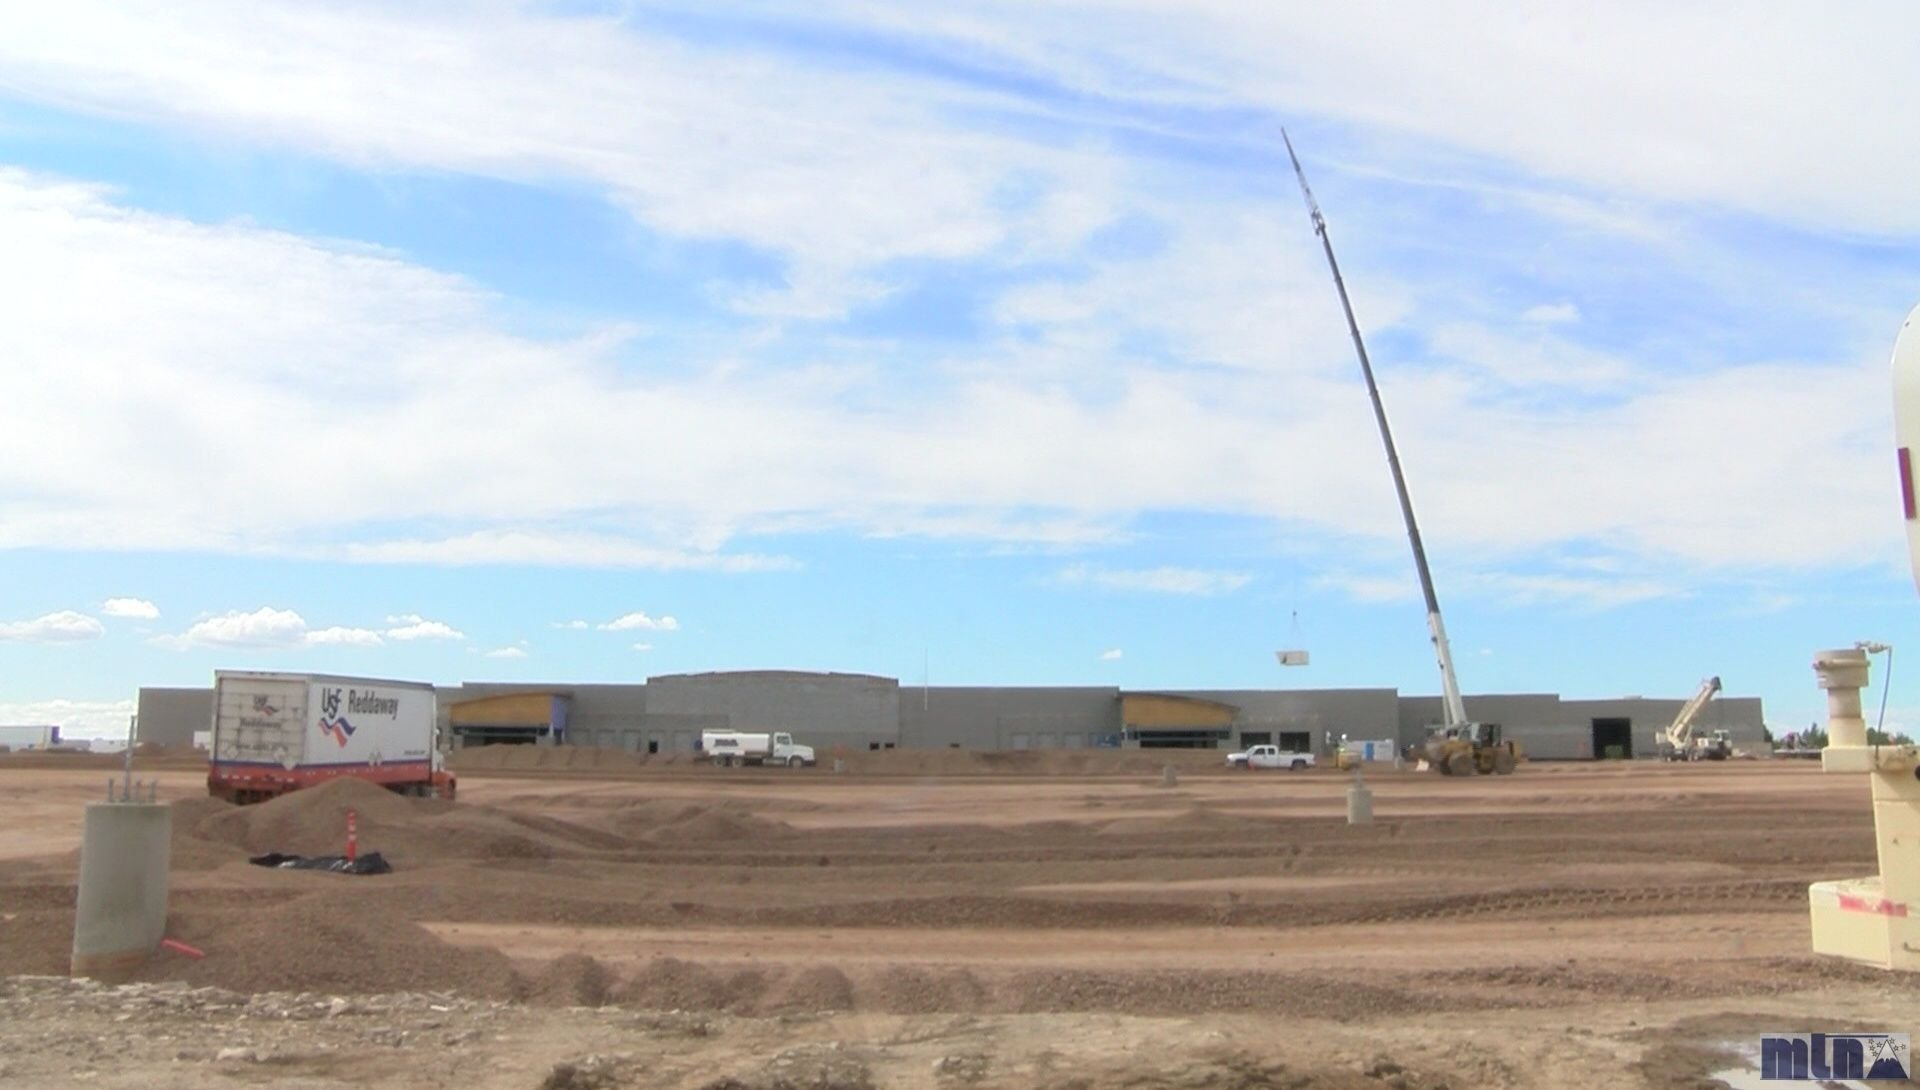 Construction on a new Walmart is also underway on 26 acres of land along the east end of town, on the south side of 10th Avenue South near 57th Street.